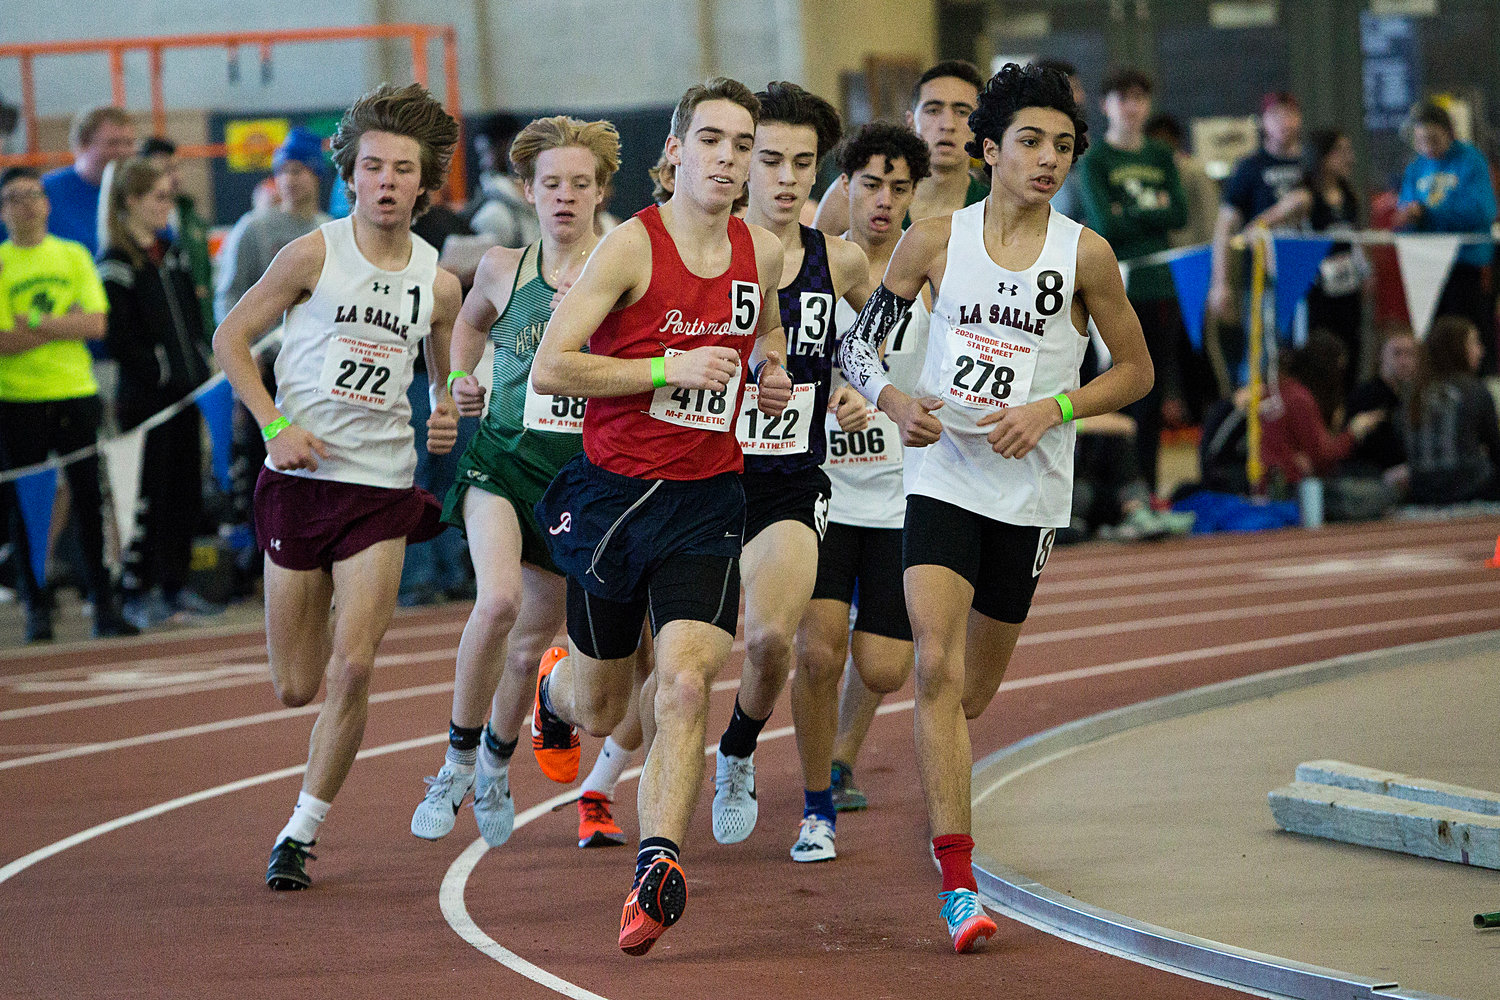 The Patriots' Ben Chase keeps pace at the head of the pack while competing in the boys' 1,500-meter run.